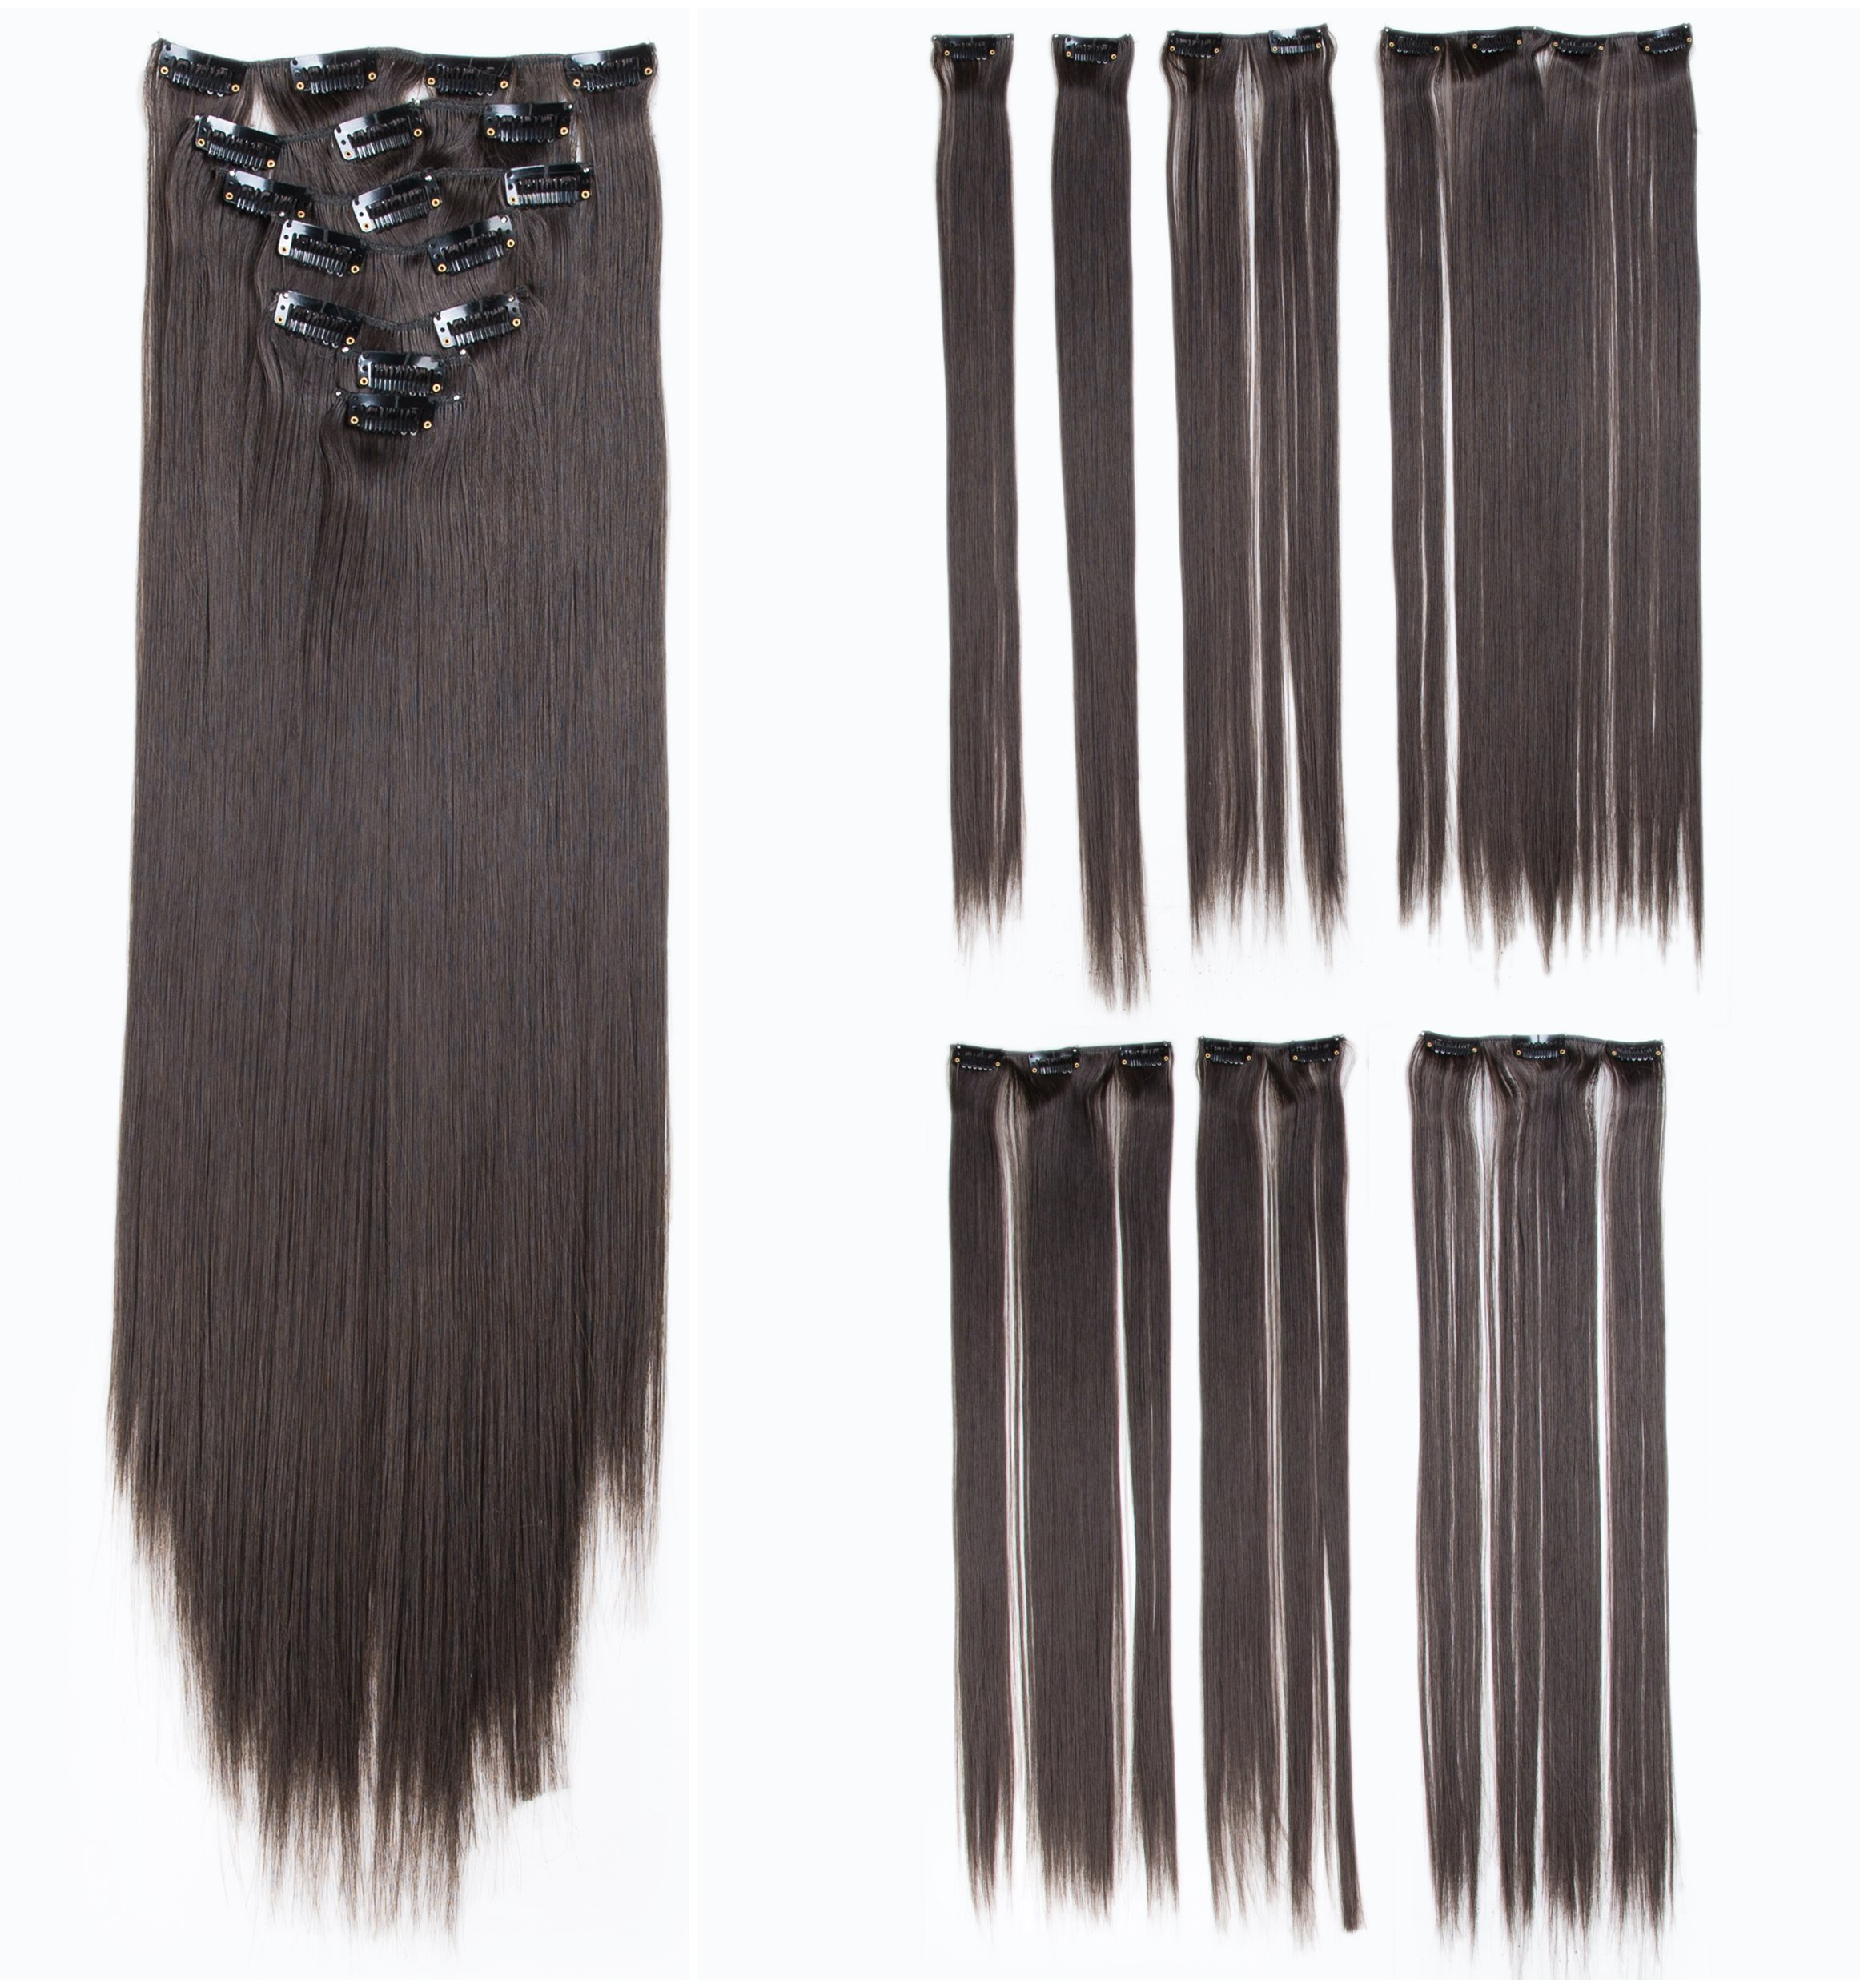 Amazon Swacc Women 22 Inches Straight Full Head 7 Separate